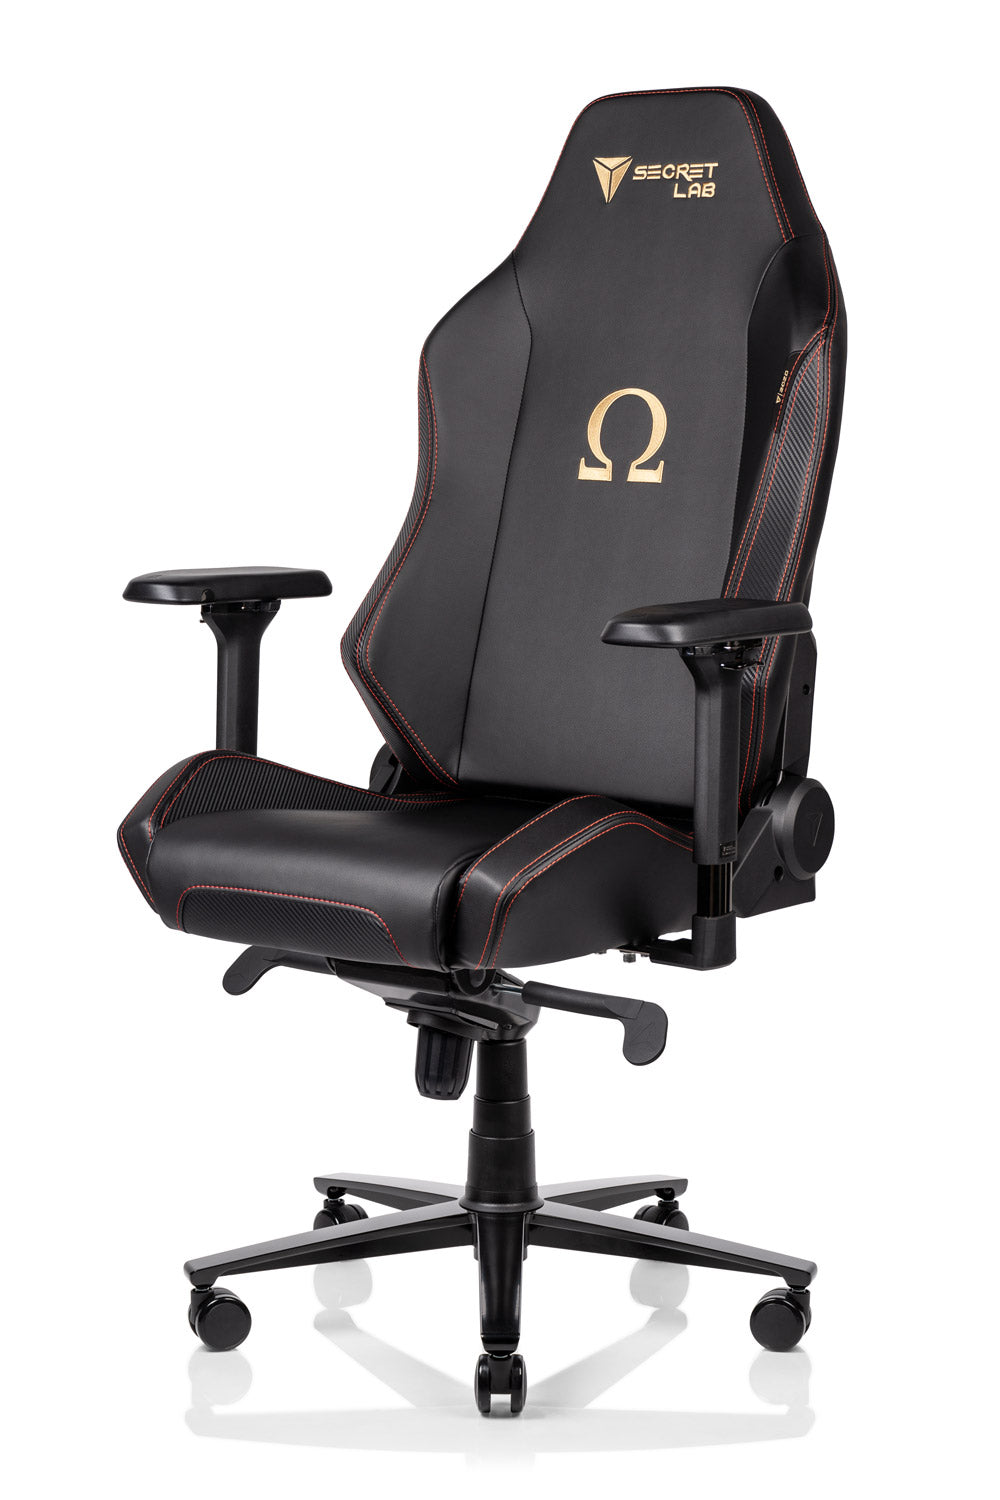 Best Gaming Chair 2020 Reddit OMEGA Series gaming chairs | Secretlab US